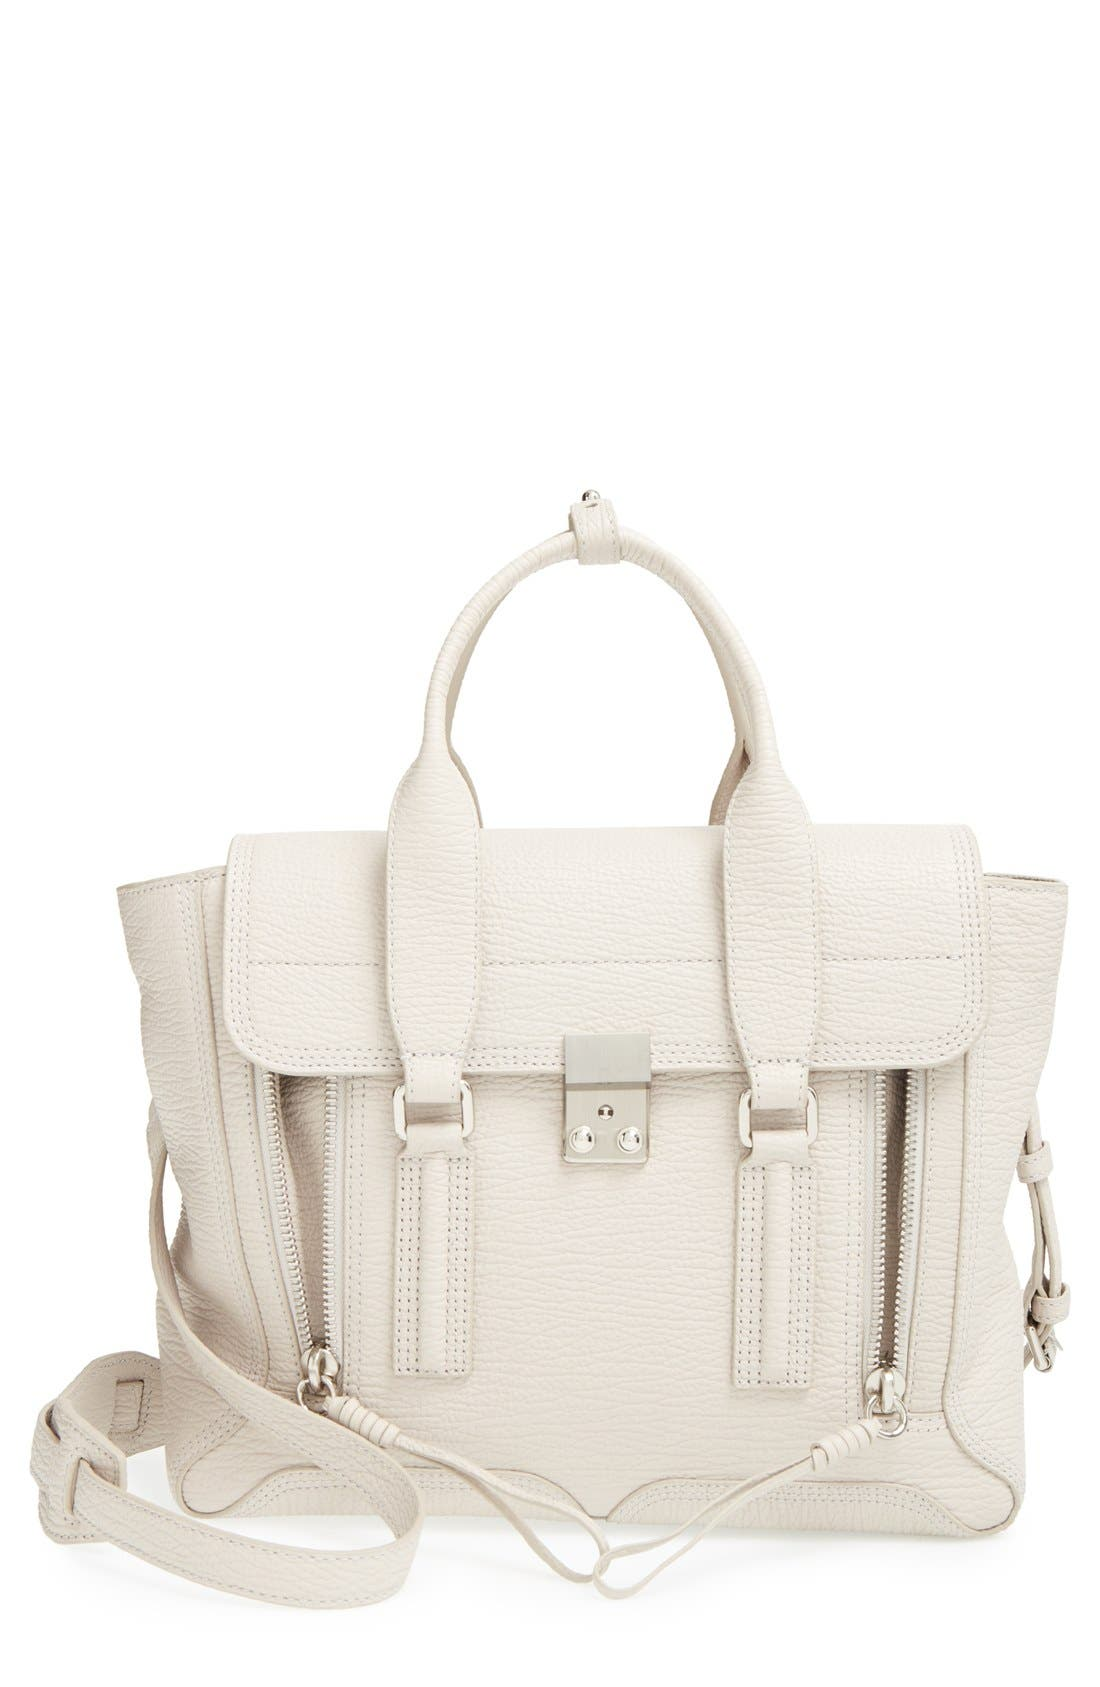 3.1 PHILLIP LIM 'Medium Pashli' Shark Embossed Leather